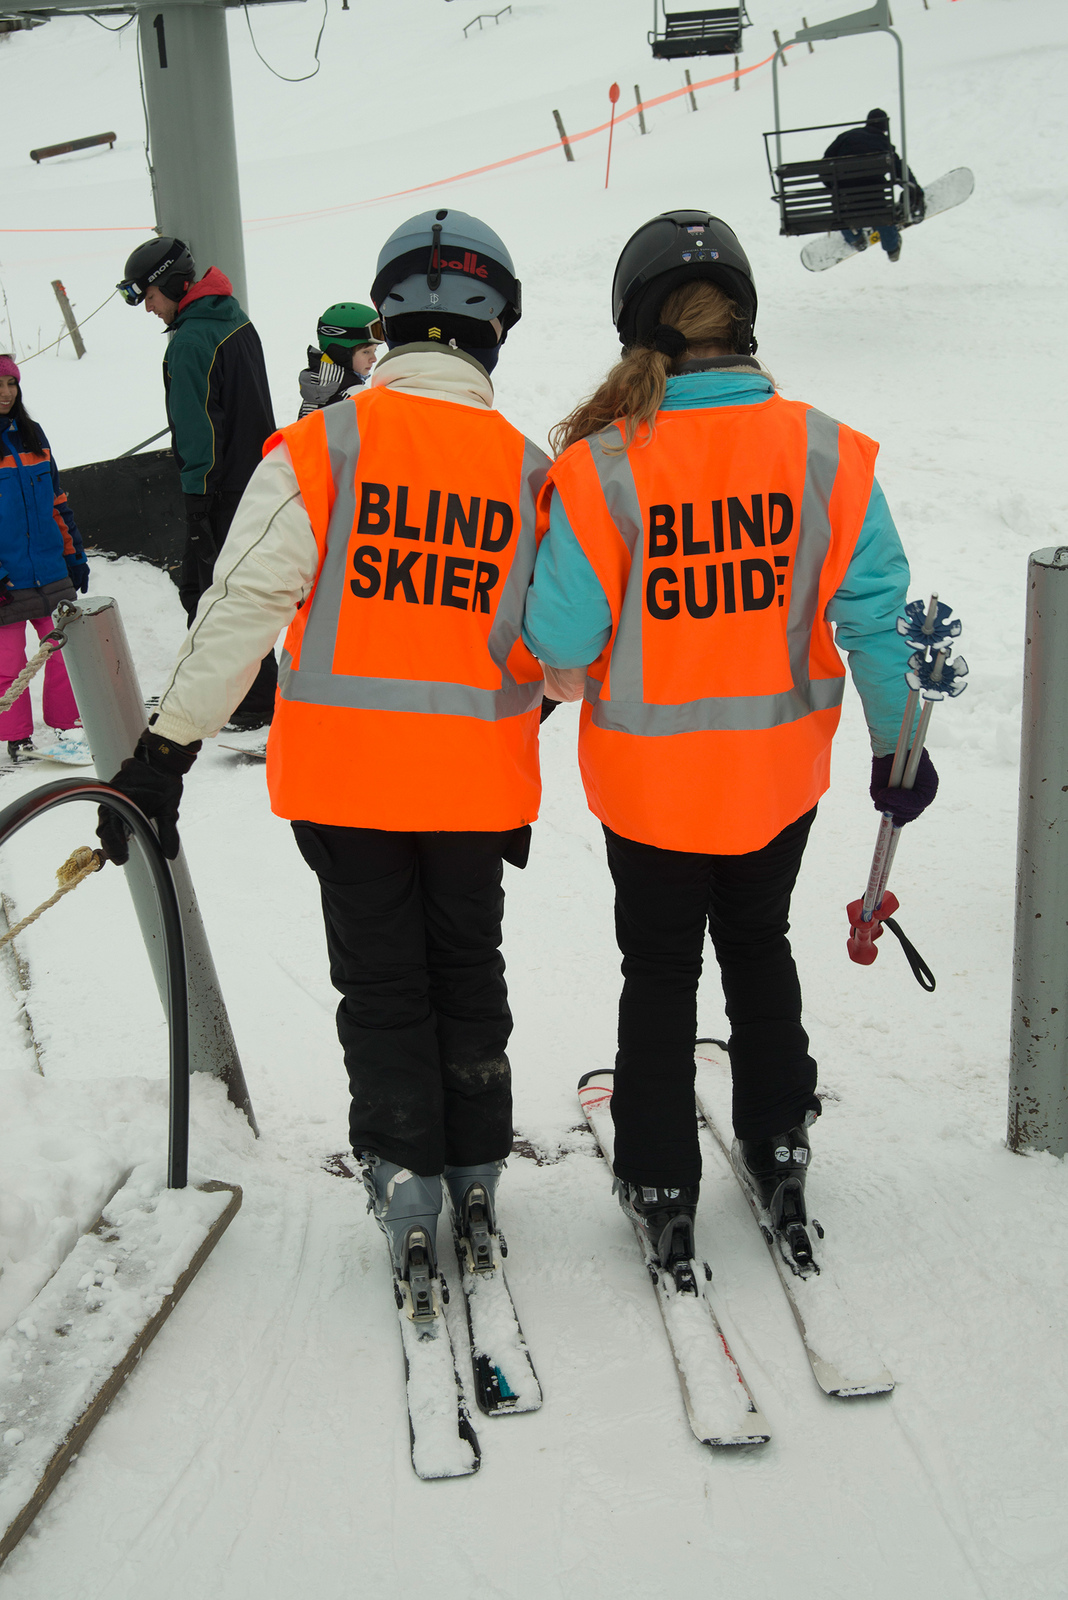 Blind guide helping blind skier onto ski lifts